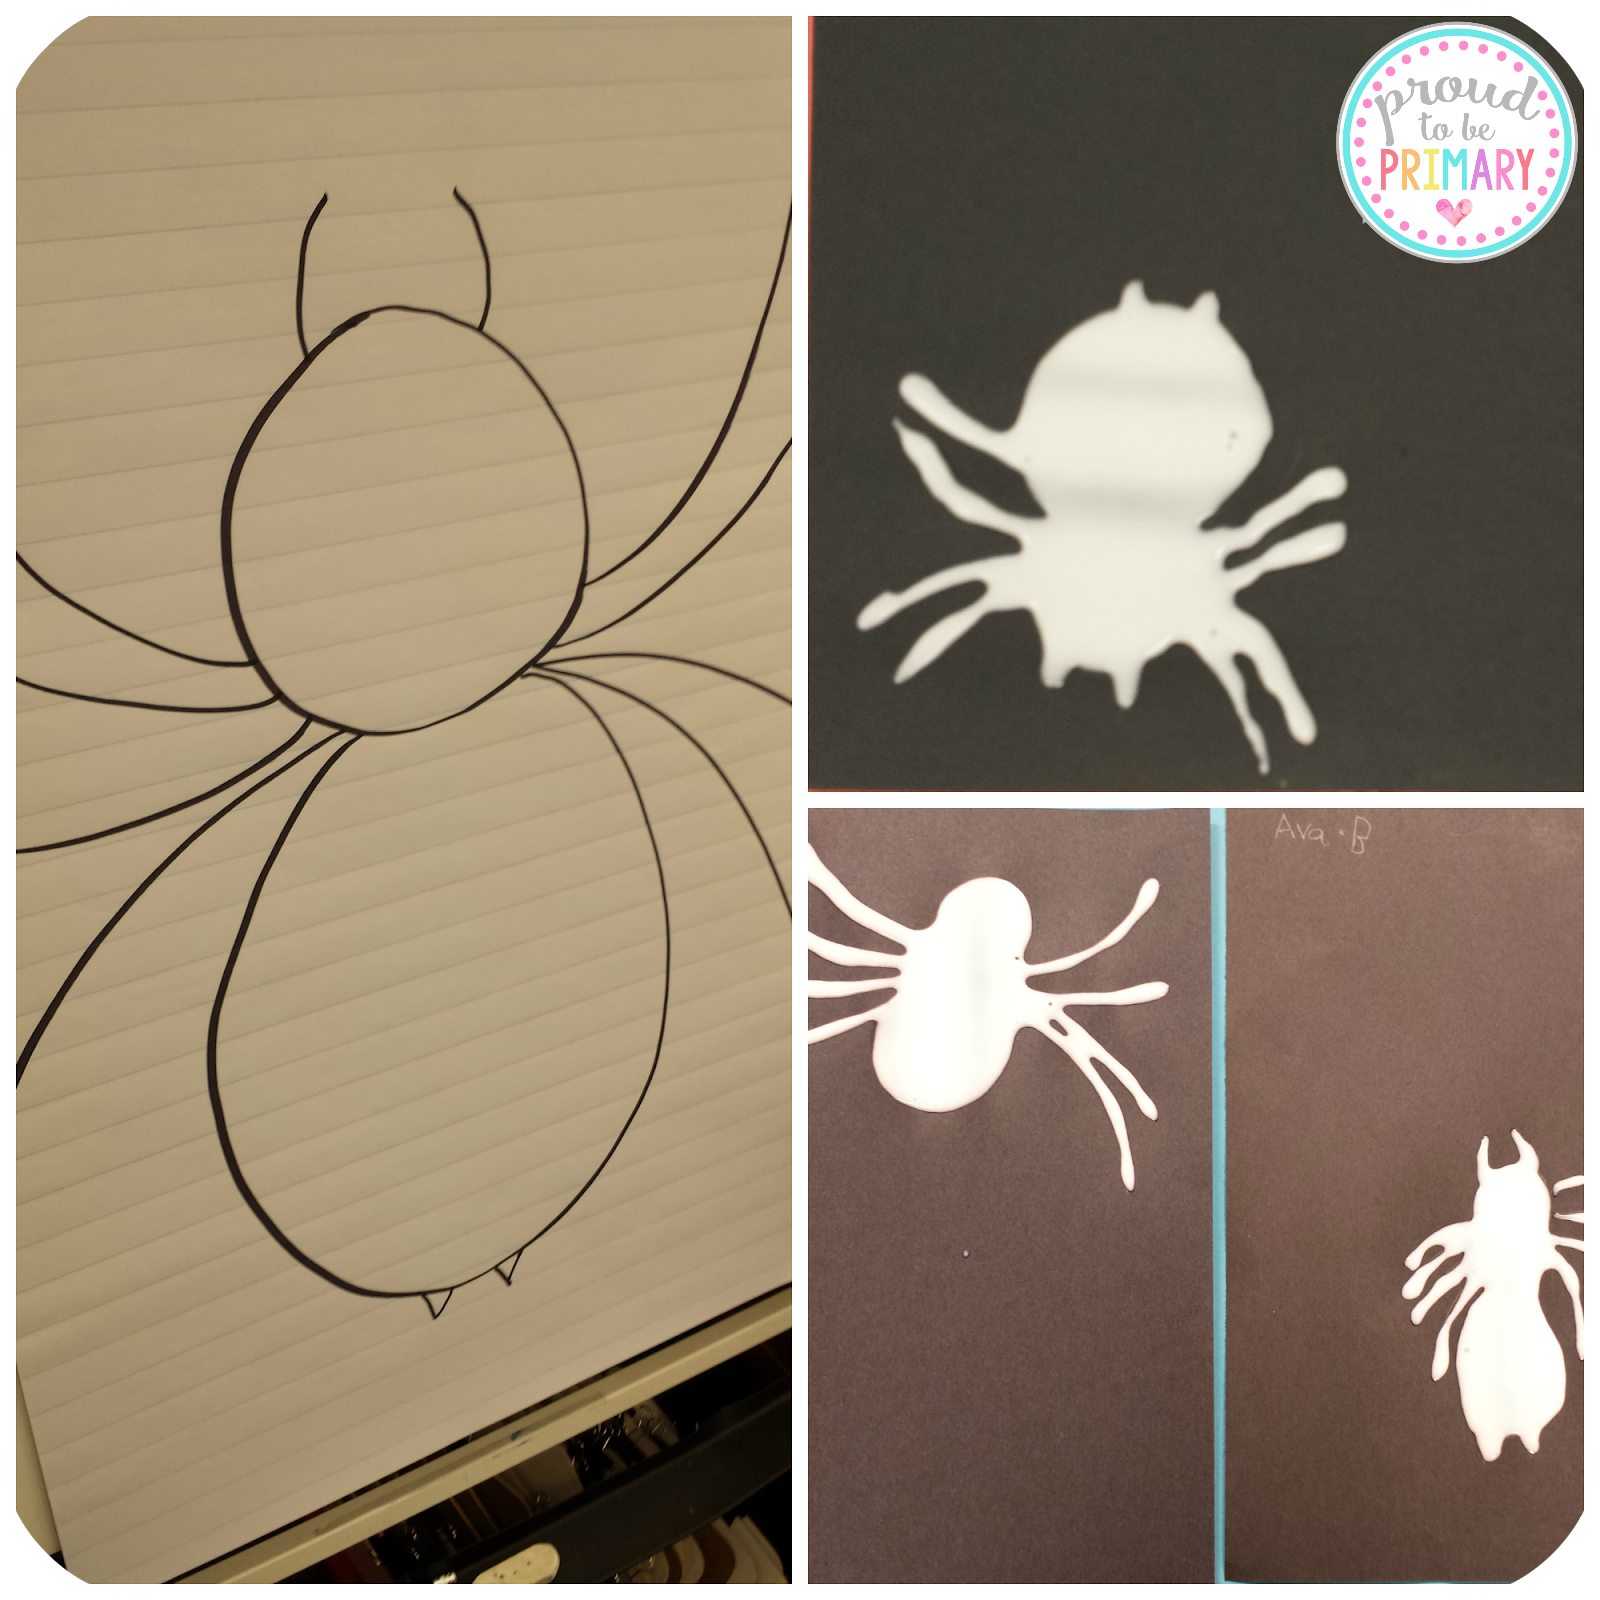 Brave enough to teach your students about spiders this fall or Halloween? This spider post includes a ton of activities - science, non-writing writing, life cycle, art project, and more to engage and entertain students in their learning about spiders!